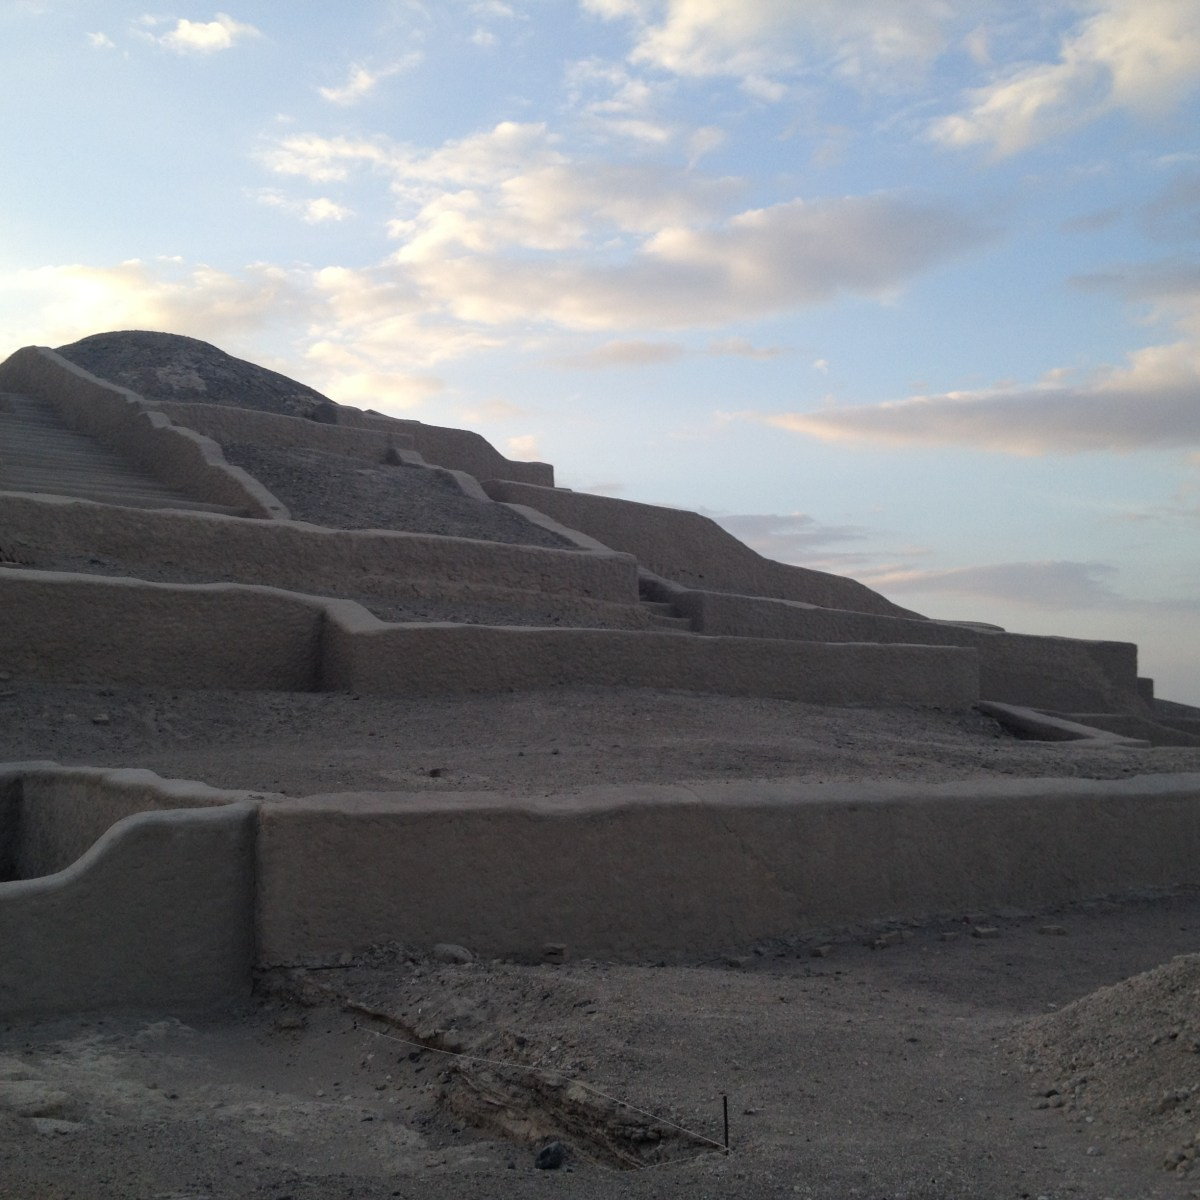 Nazca Cahuachi Ruins: Photo Gallery